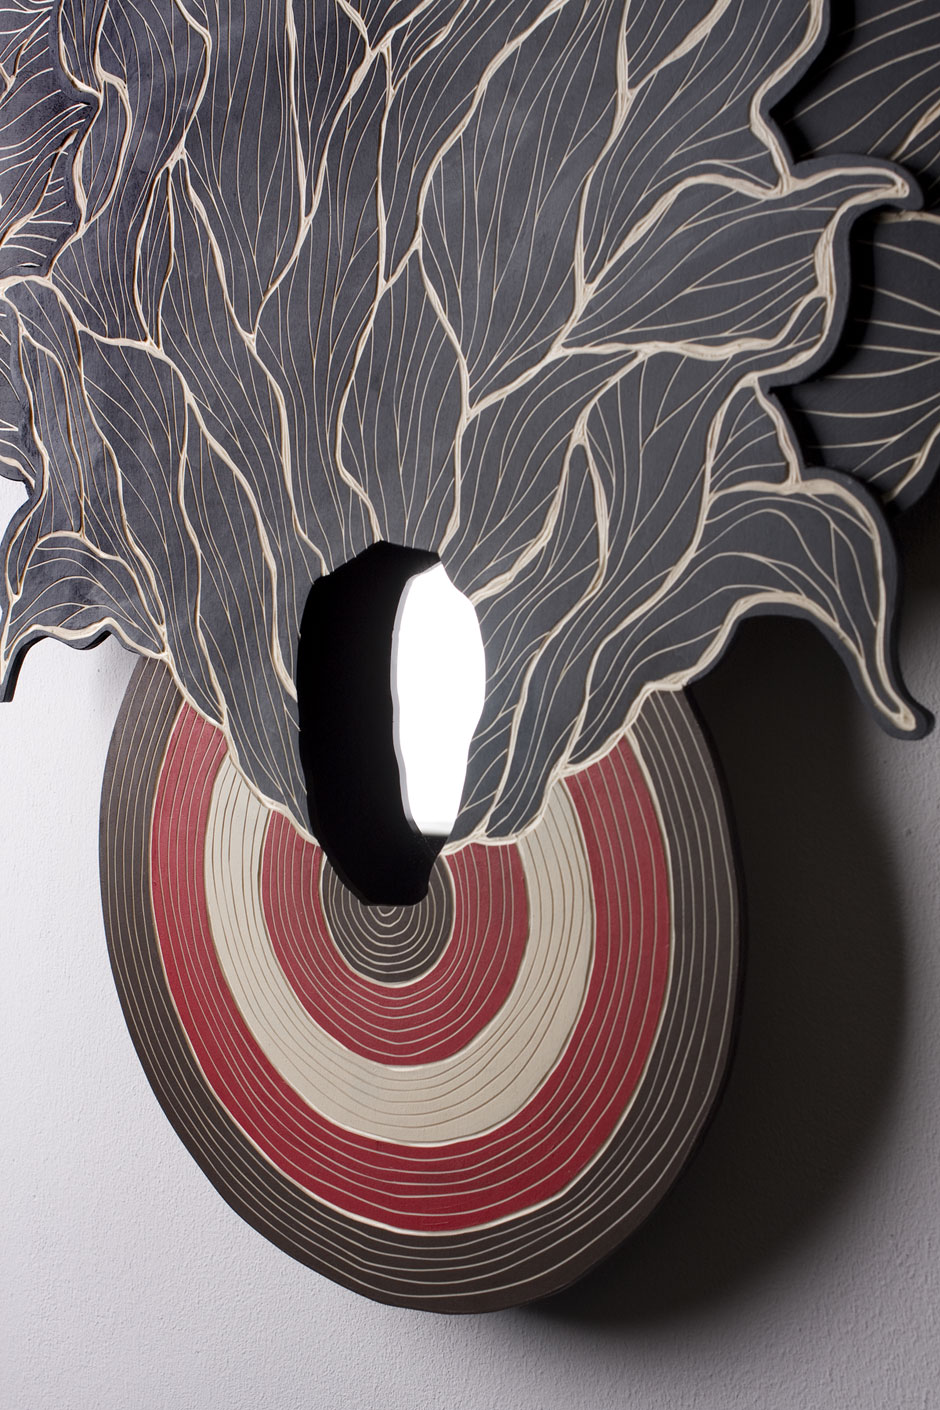 Detail of:   TARGET.PRACTICE #02 by Alex Diamond | woodcut, acrylic paint, mirror;  78 x 62 x 3 cm (2014)